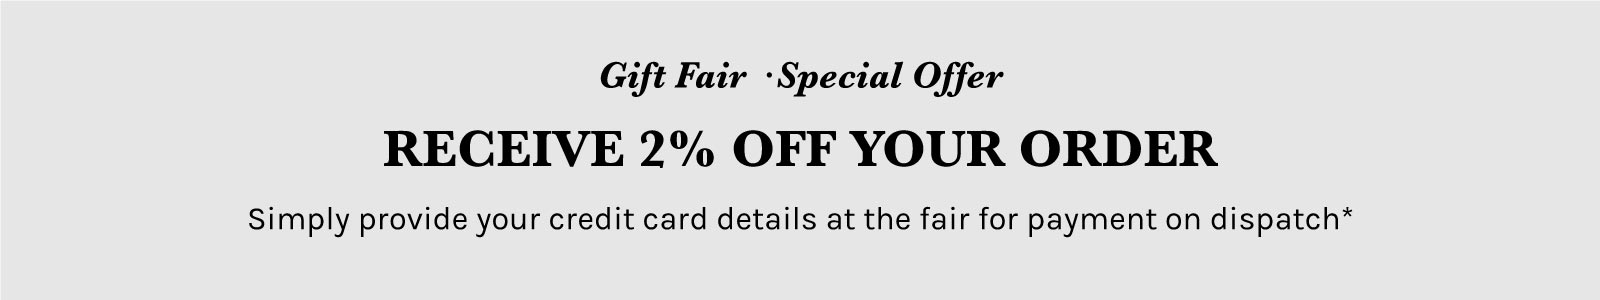 Gift Fair · Special Offer Receive 2% Off Your Order Simply provide your credit card details at the fair for payment on dispatch*